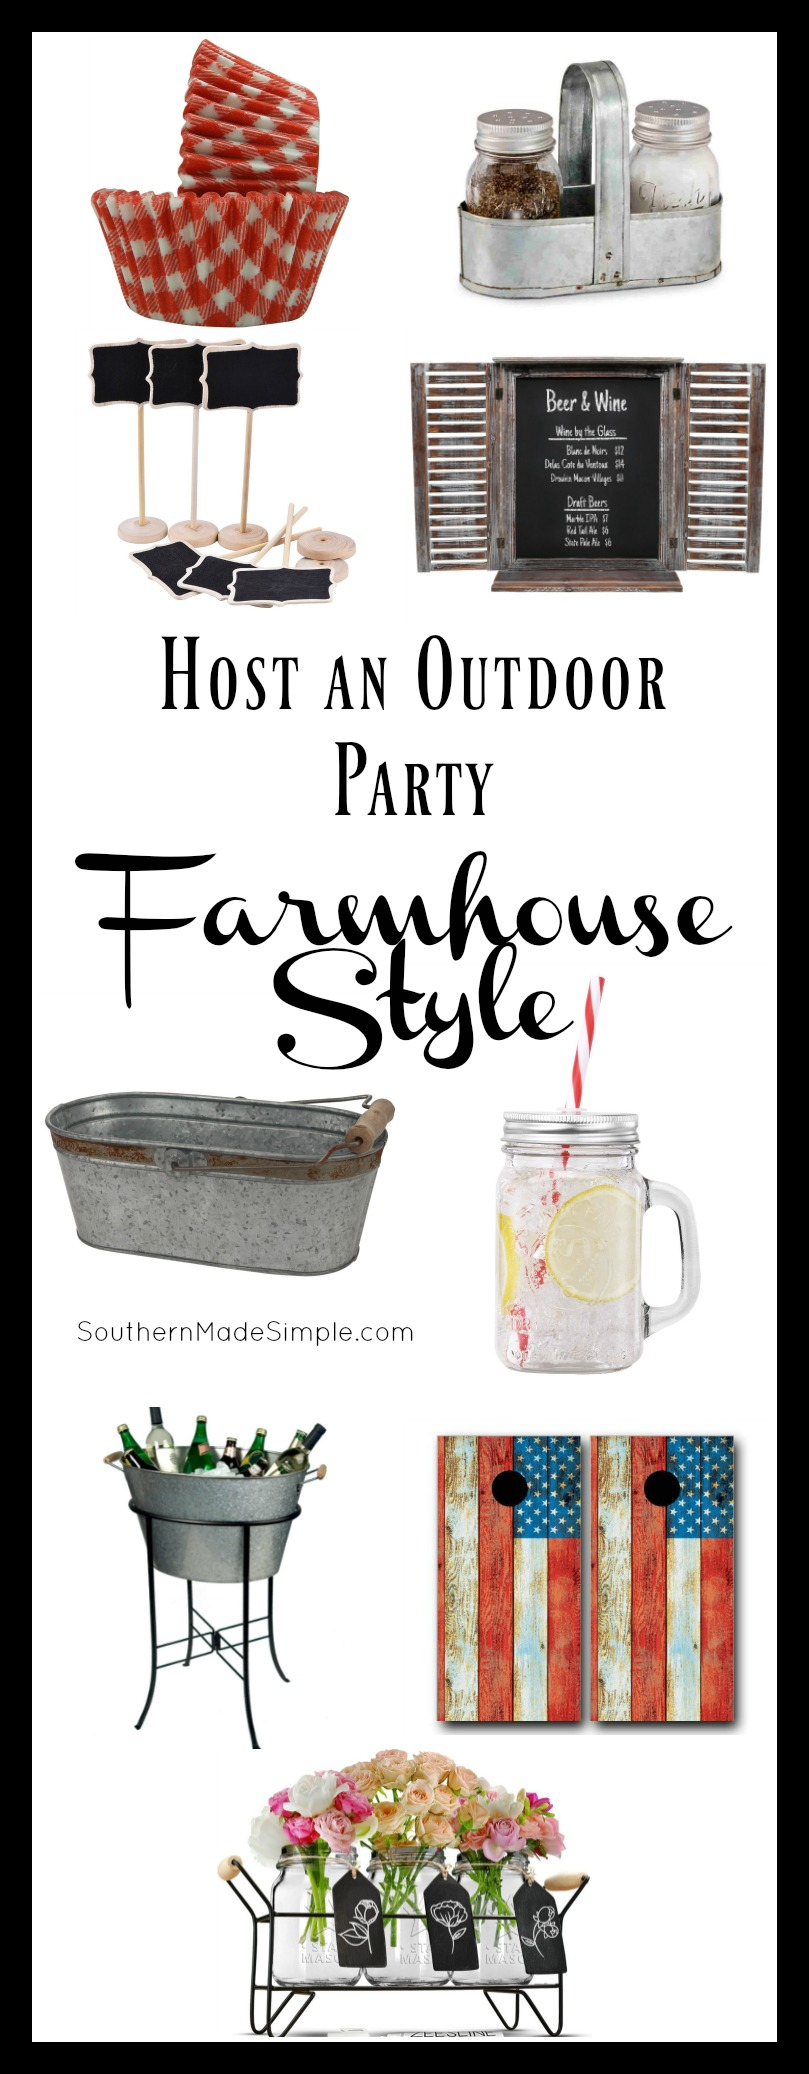 Host an Outdoor Party - Farmhouse Style! Put together the cutest outdoor party with a shabby-chic flair - and all from Amazon!